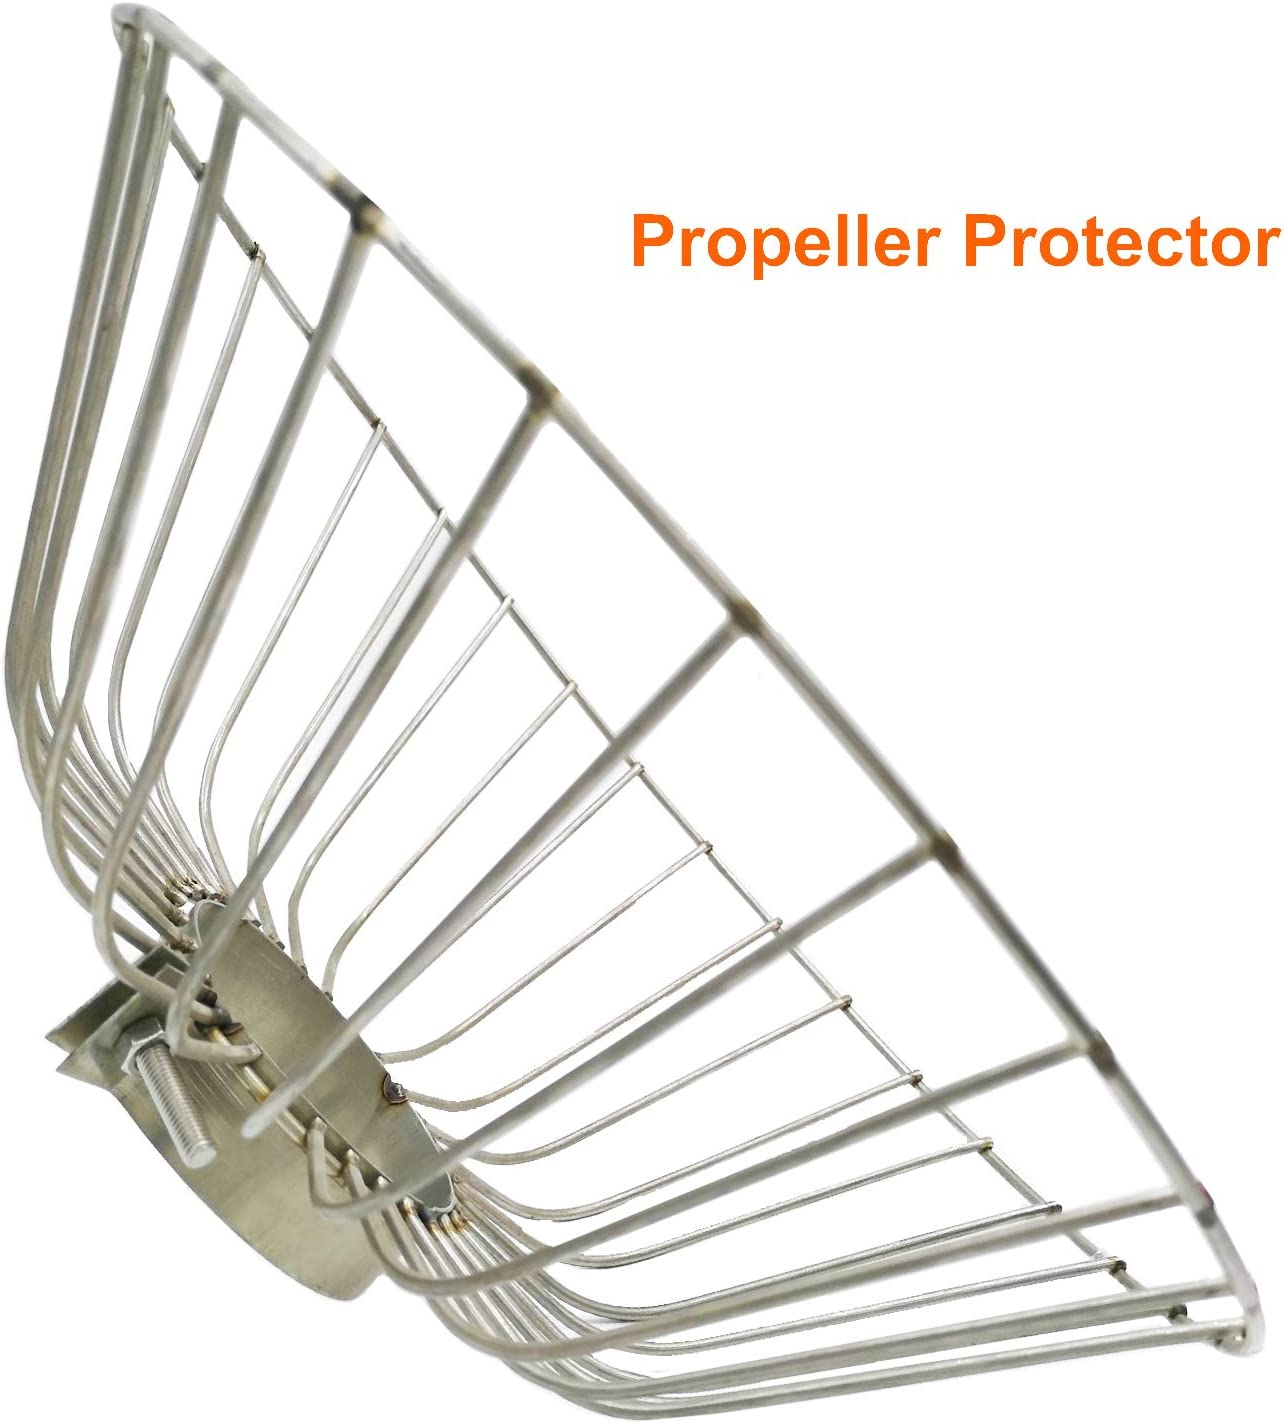 BXI Propeller's Safety Cage Prop Protection Trolling Motor Propeller Protector Anti-Winding Anti Aquatic Plants Canoe Kayak Boat Thrust Protective Stainless Steel Net